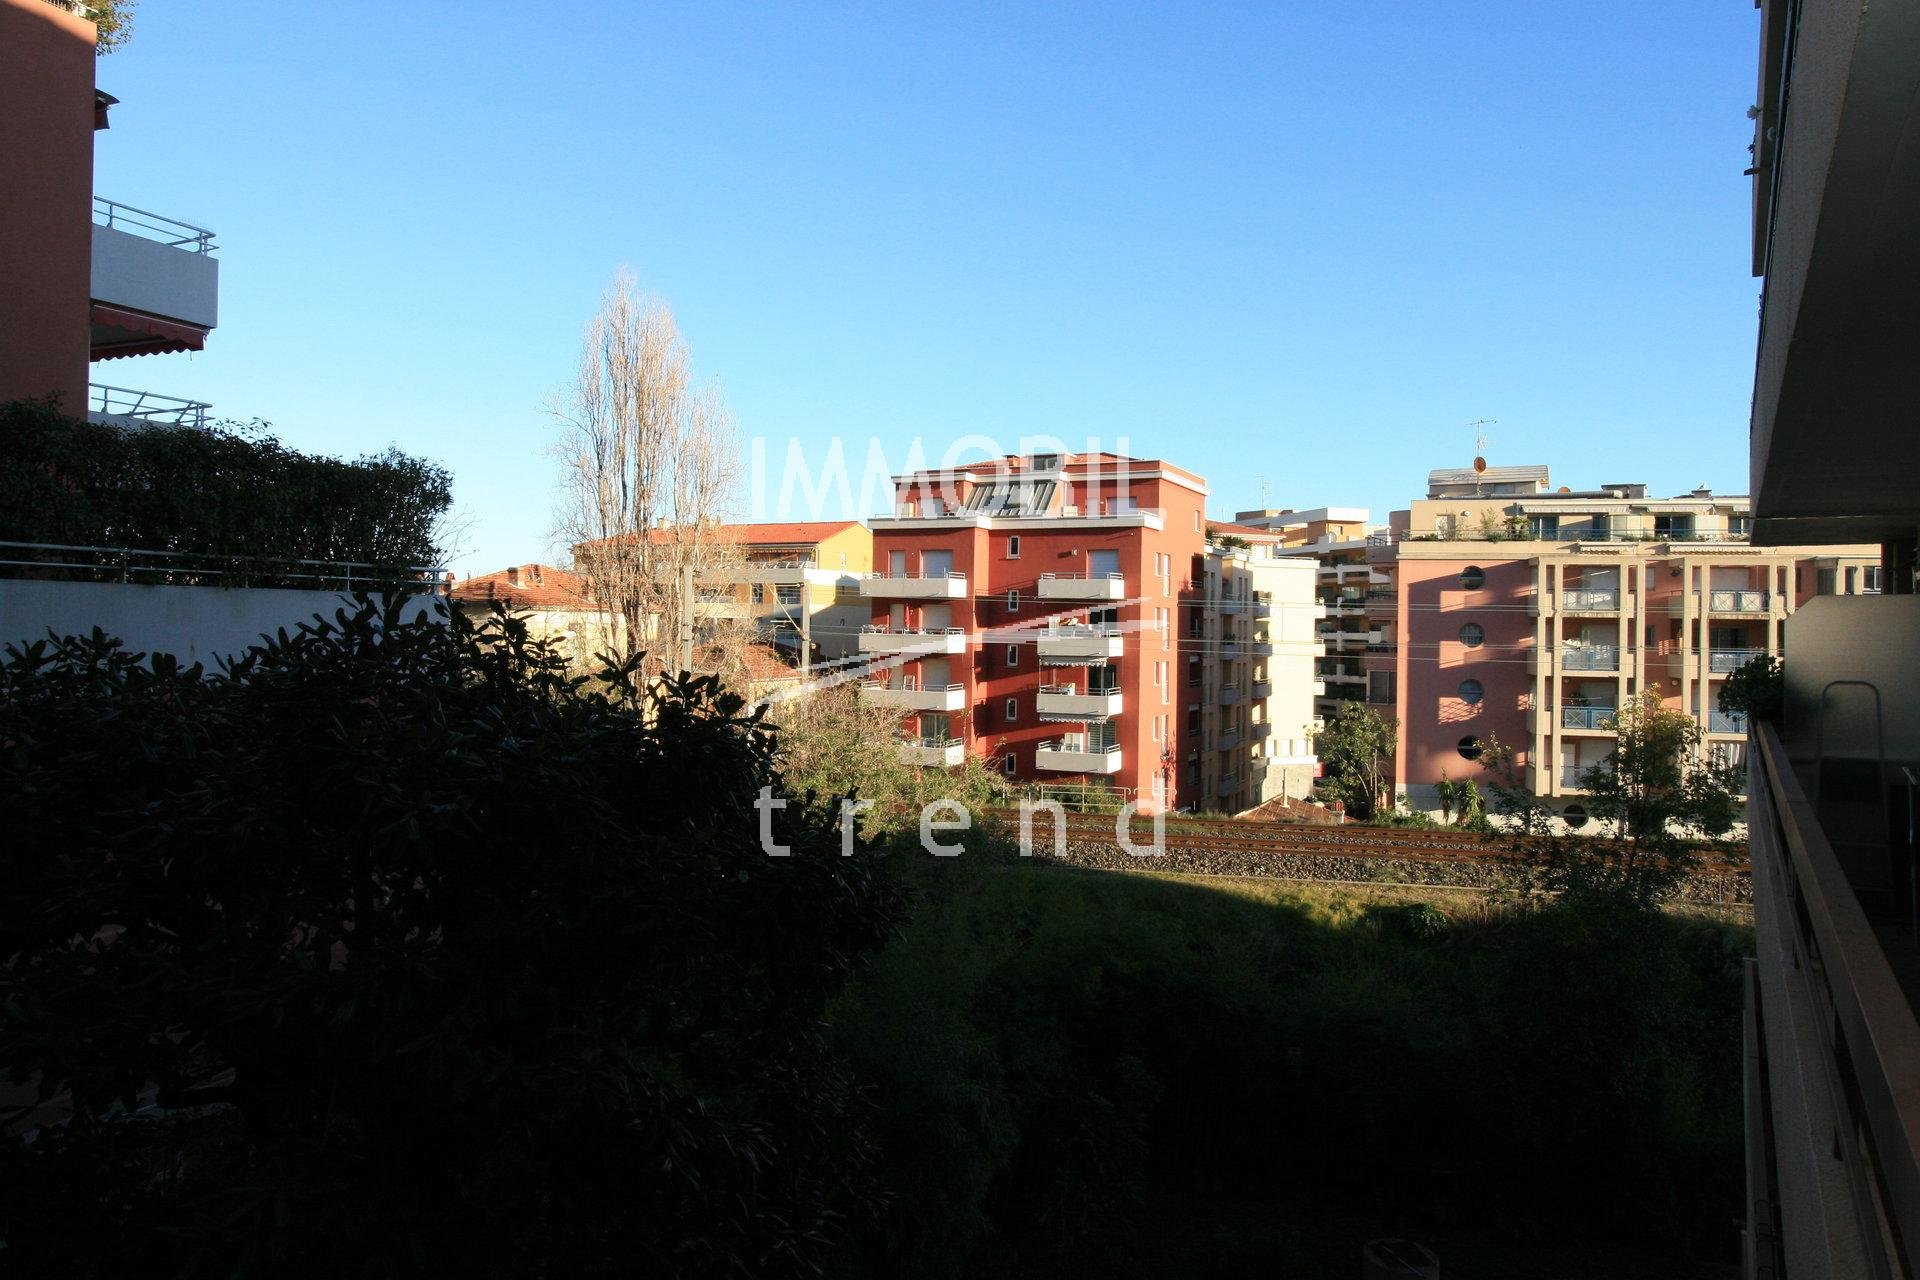 MENTON REAL ESTATE - 1 bedroom apartment for sale with balcony and cellar